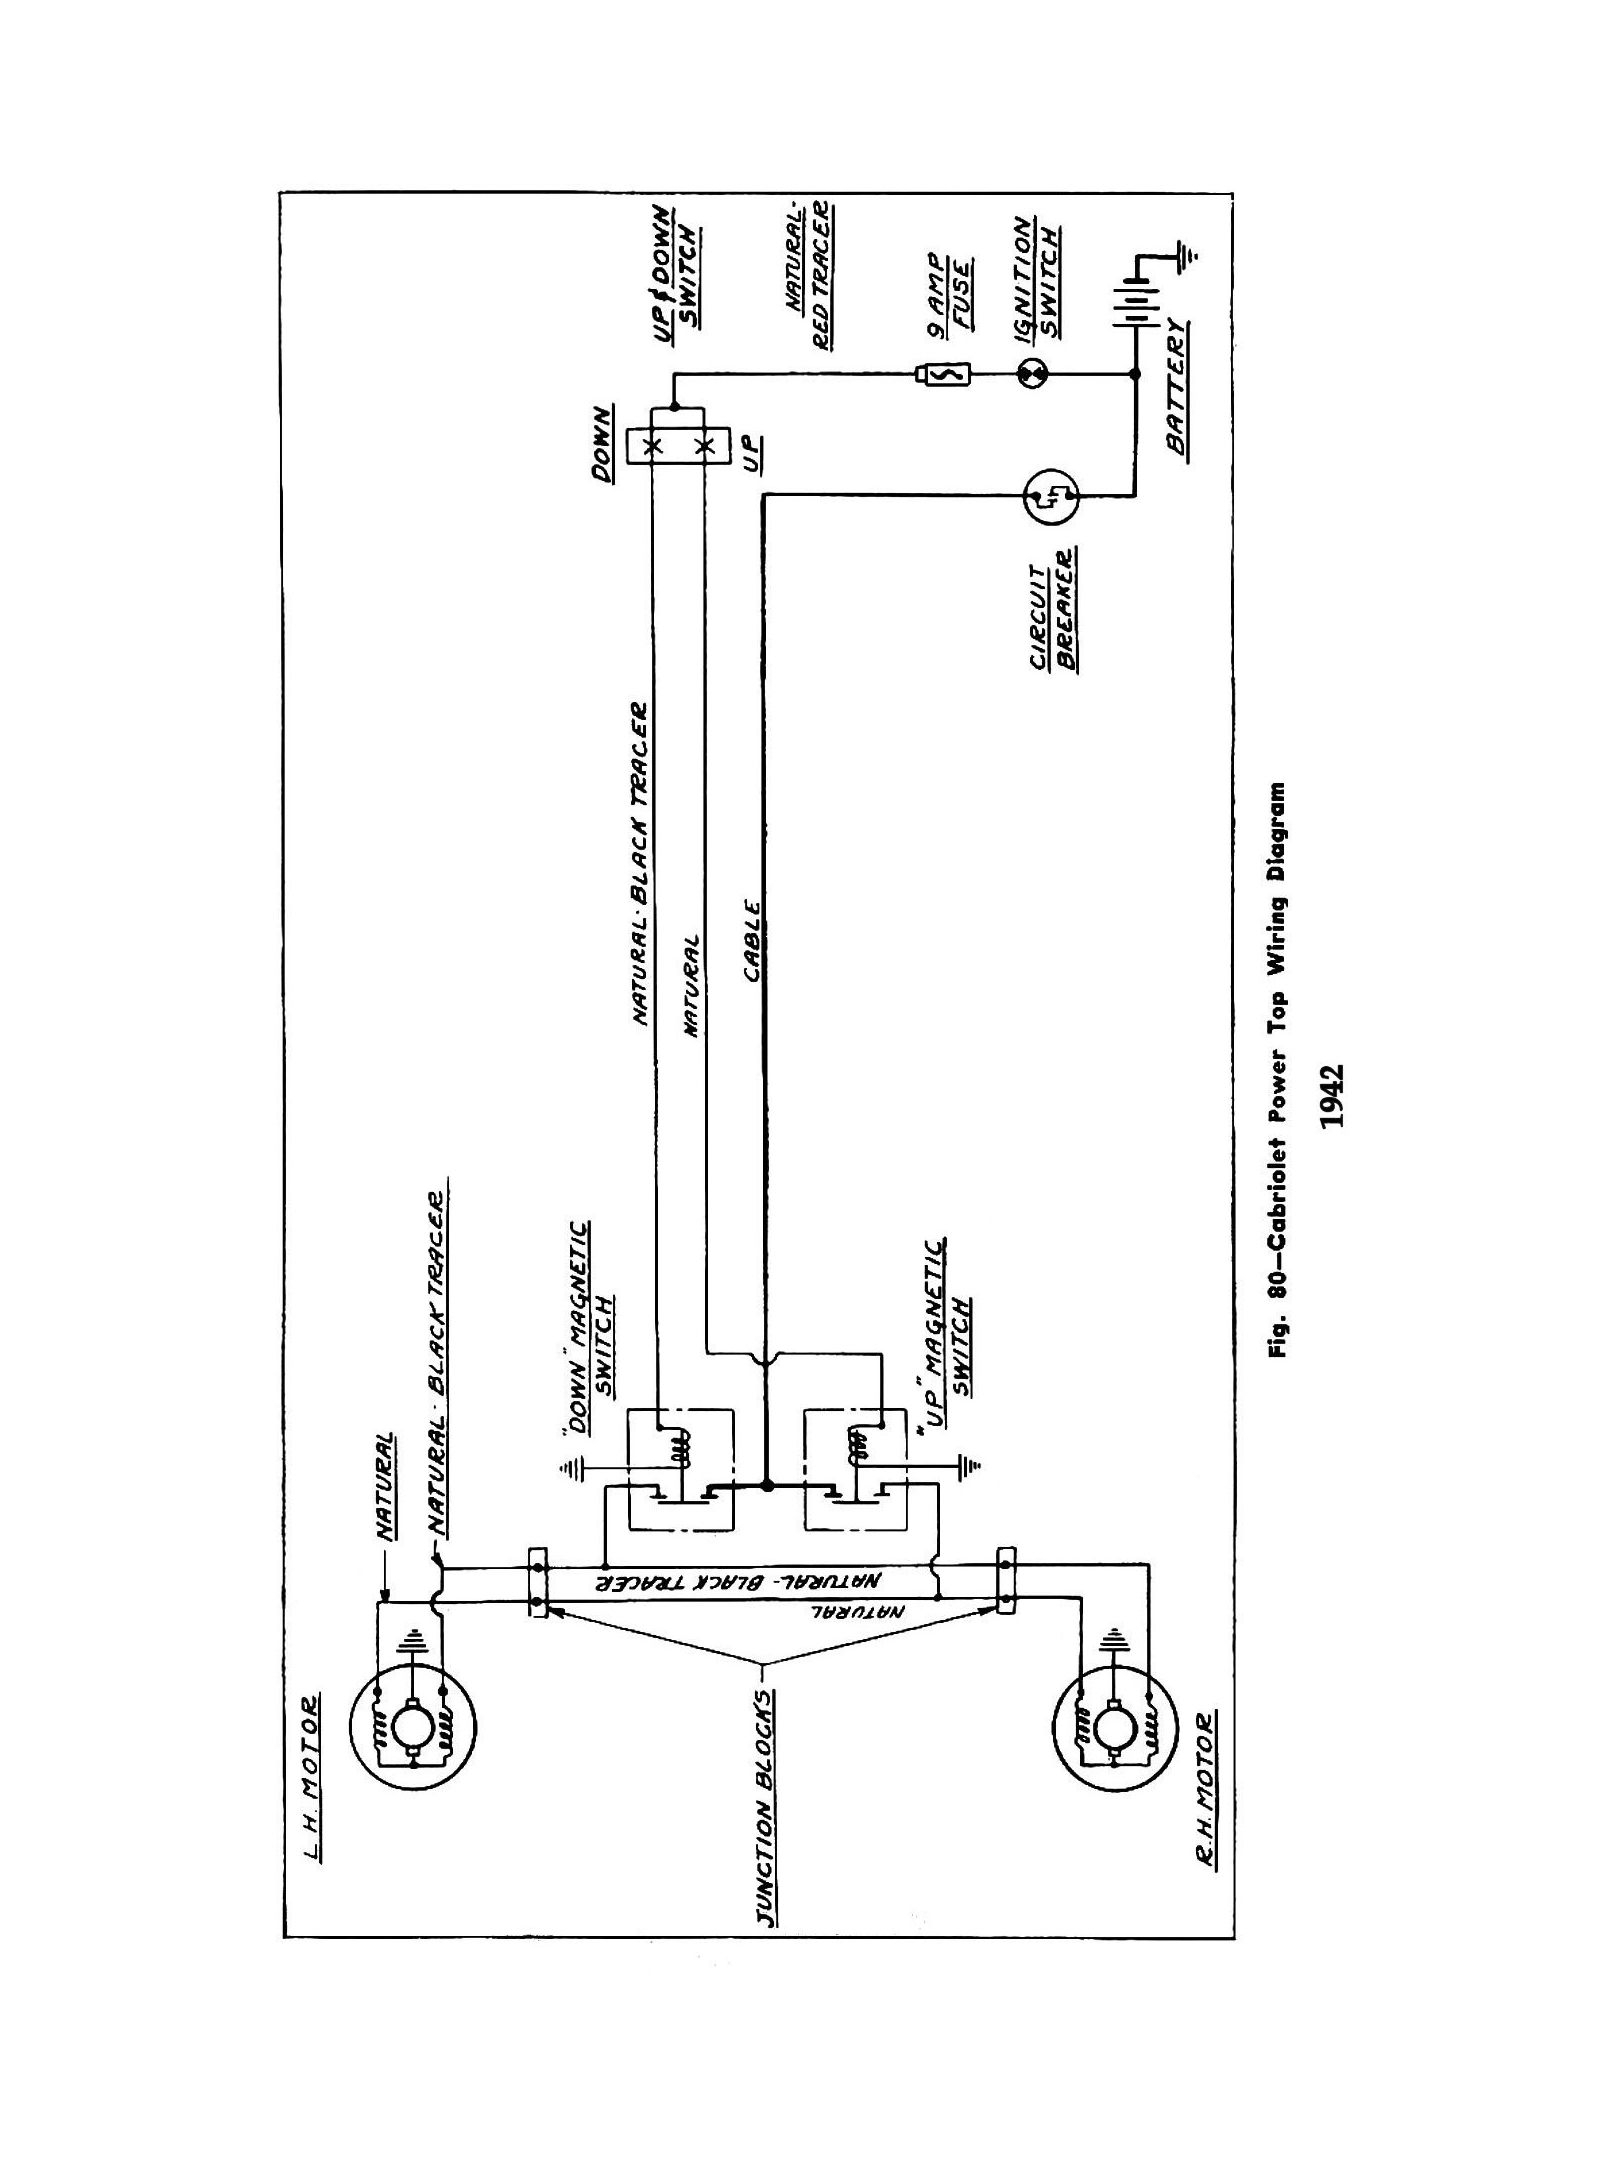 hight resolution of toyota e locker wiring diagram free wiring diagram 2006 toyota tundra wiring diagram toyota e